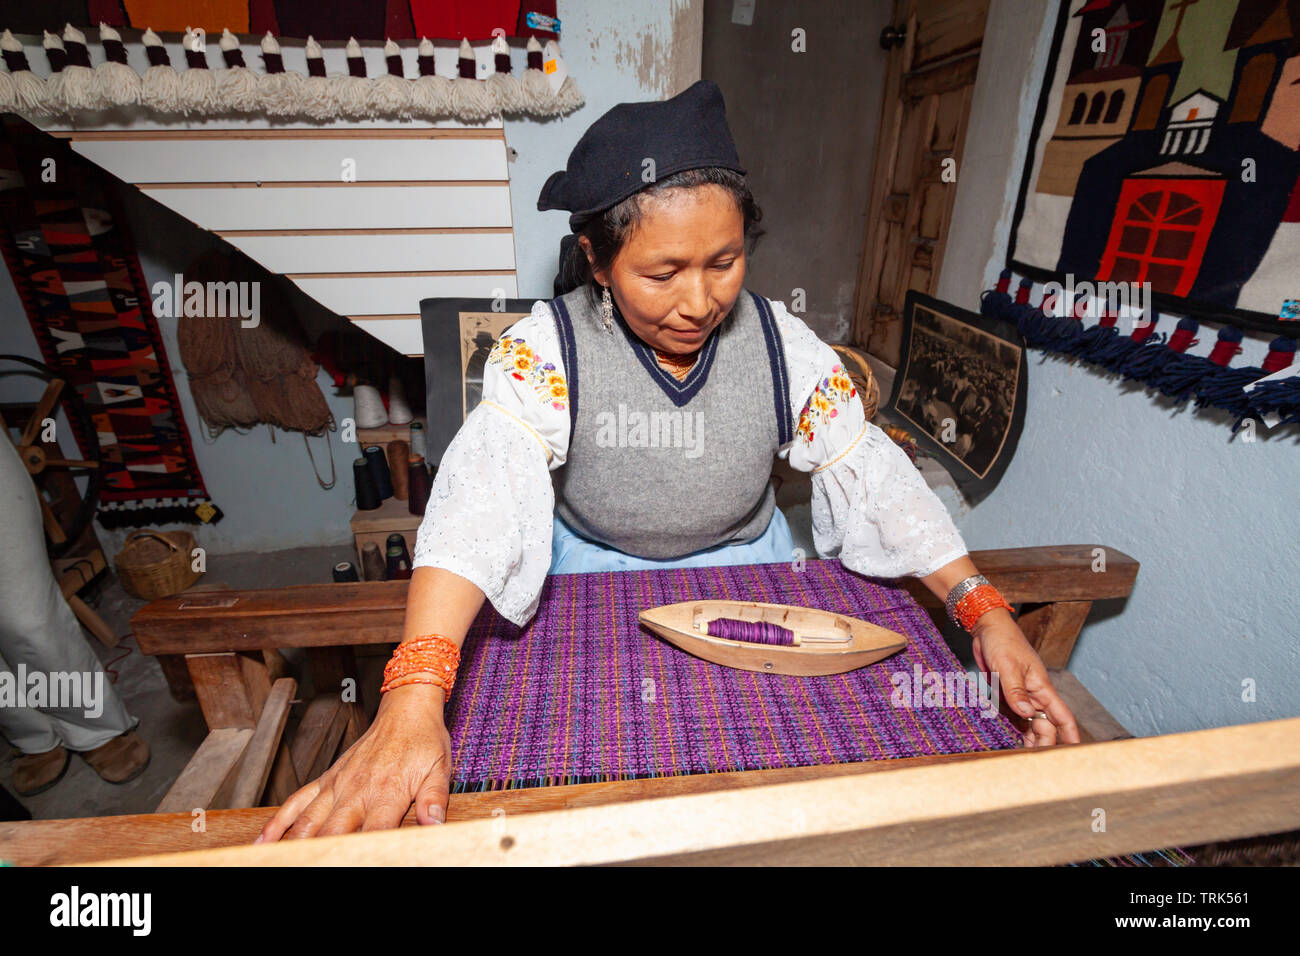 A woman weaving with spindle and loom in Peguche, a village of weavers near Otavalo, Ecuador, South America. - Stock Image